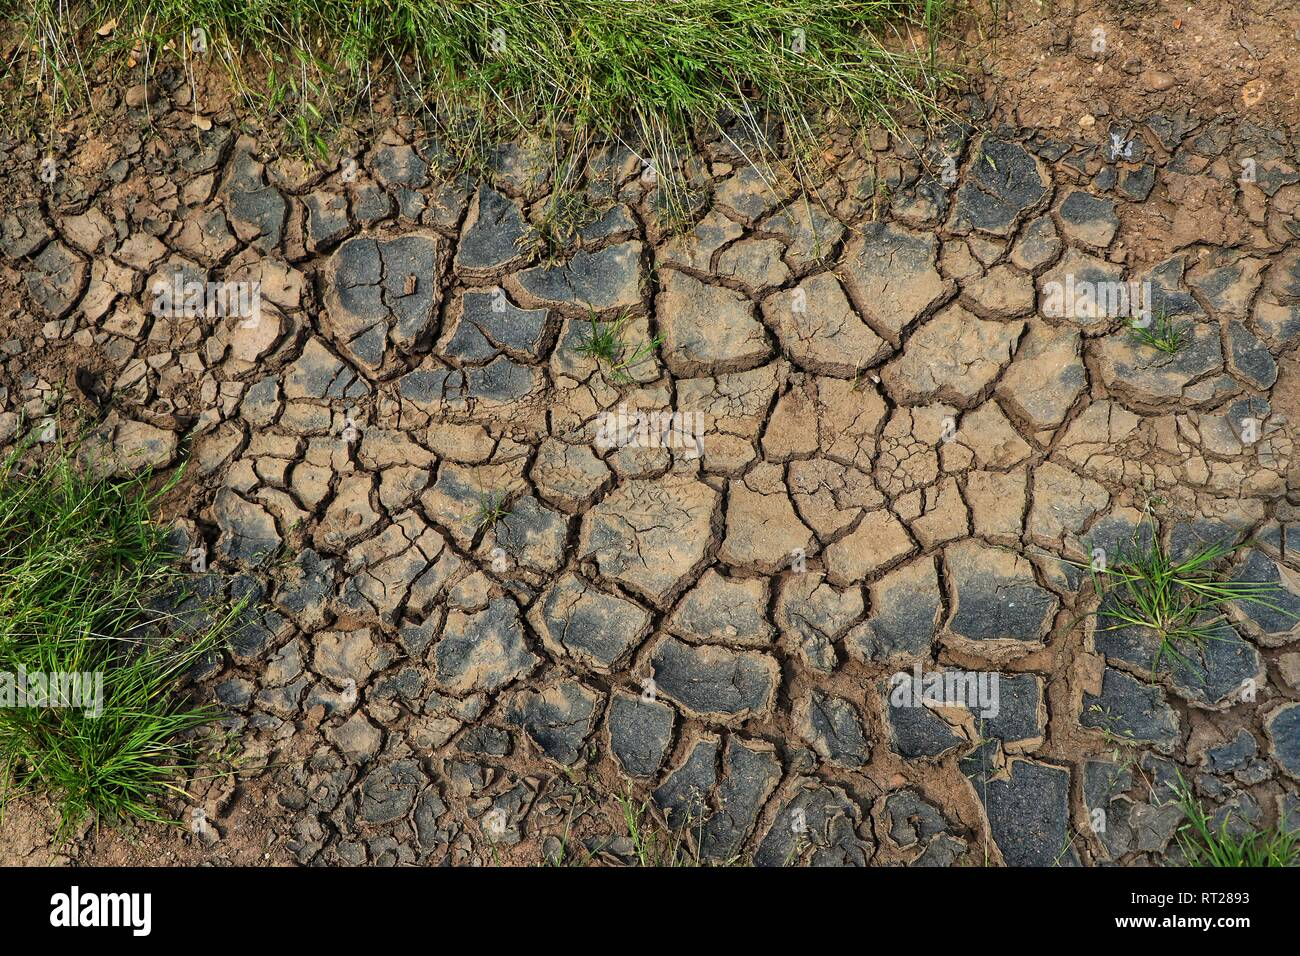 Dry cracked mud in a farmers field - Stock Image